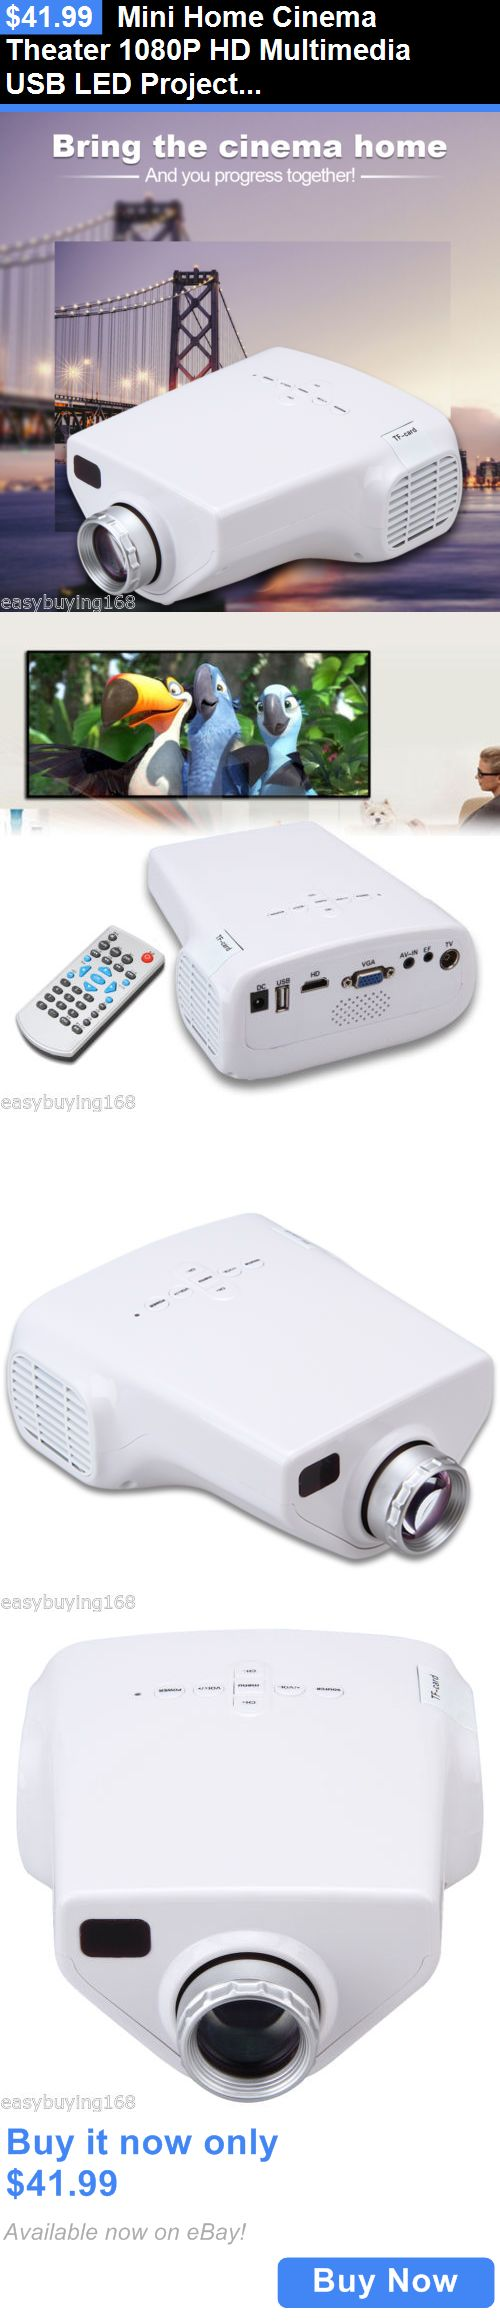 Home Theater Projectors: Mini Home Cinema Theater 1080P Hd Multimedia Usb Led Projector Pc Av Atv Hdmi Us BUY IT NOW ONLY: $41.99